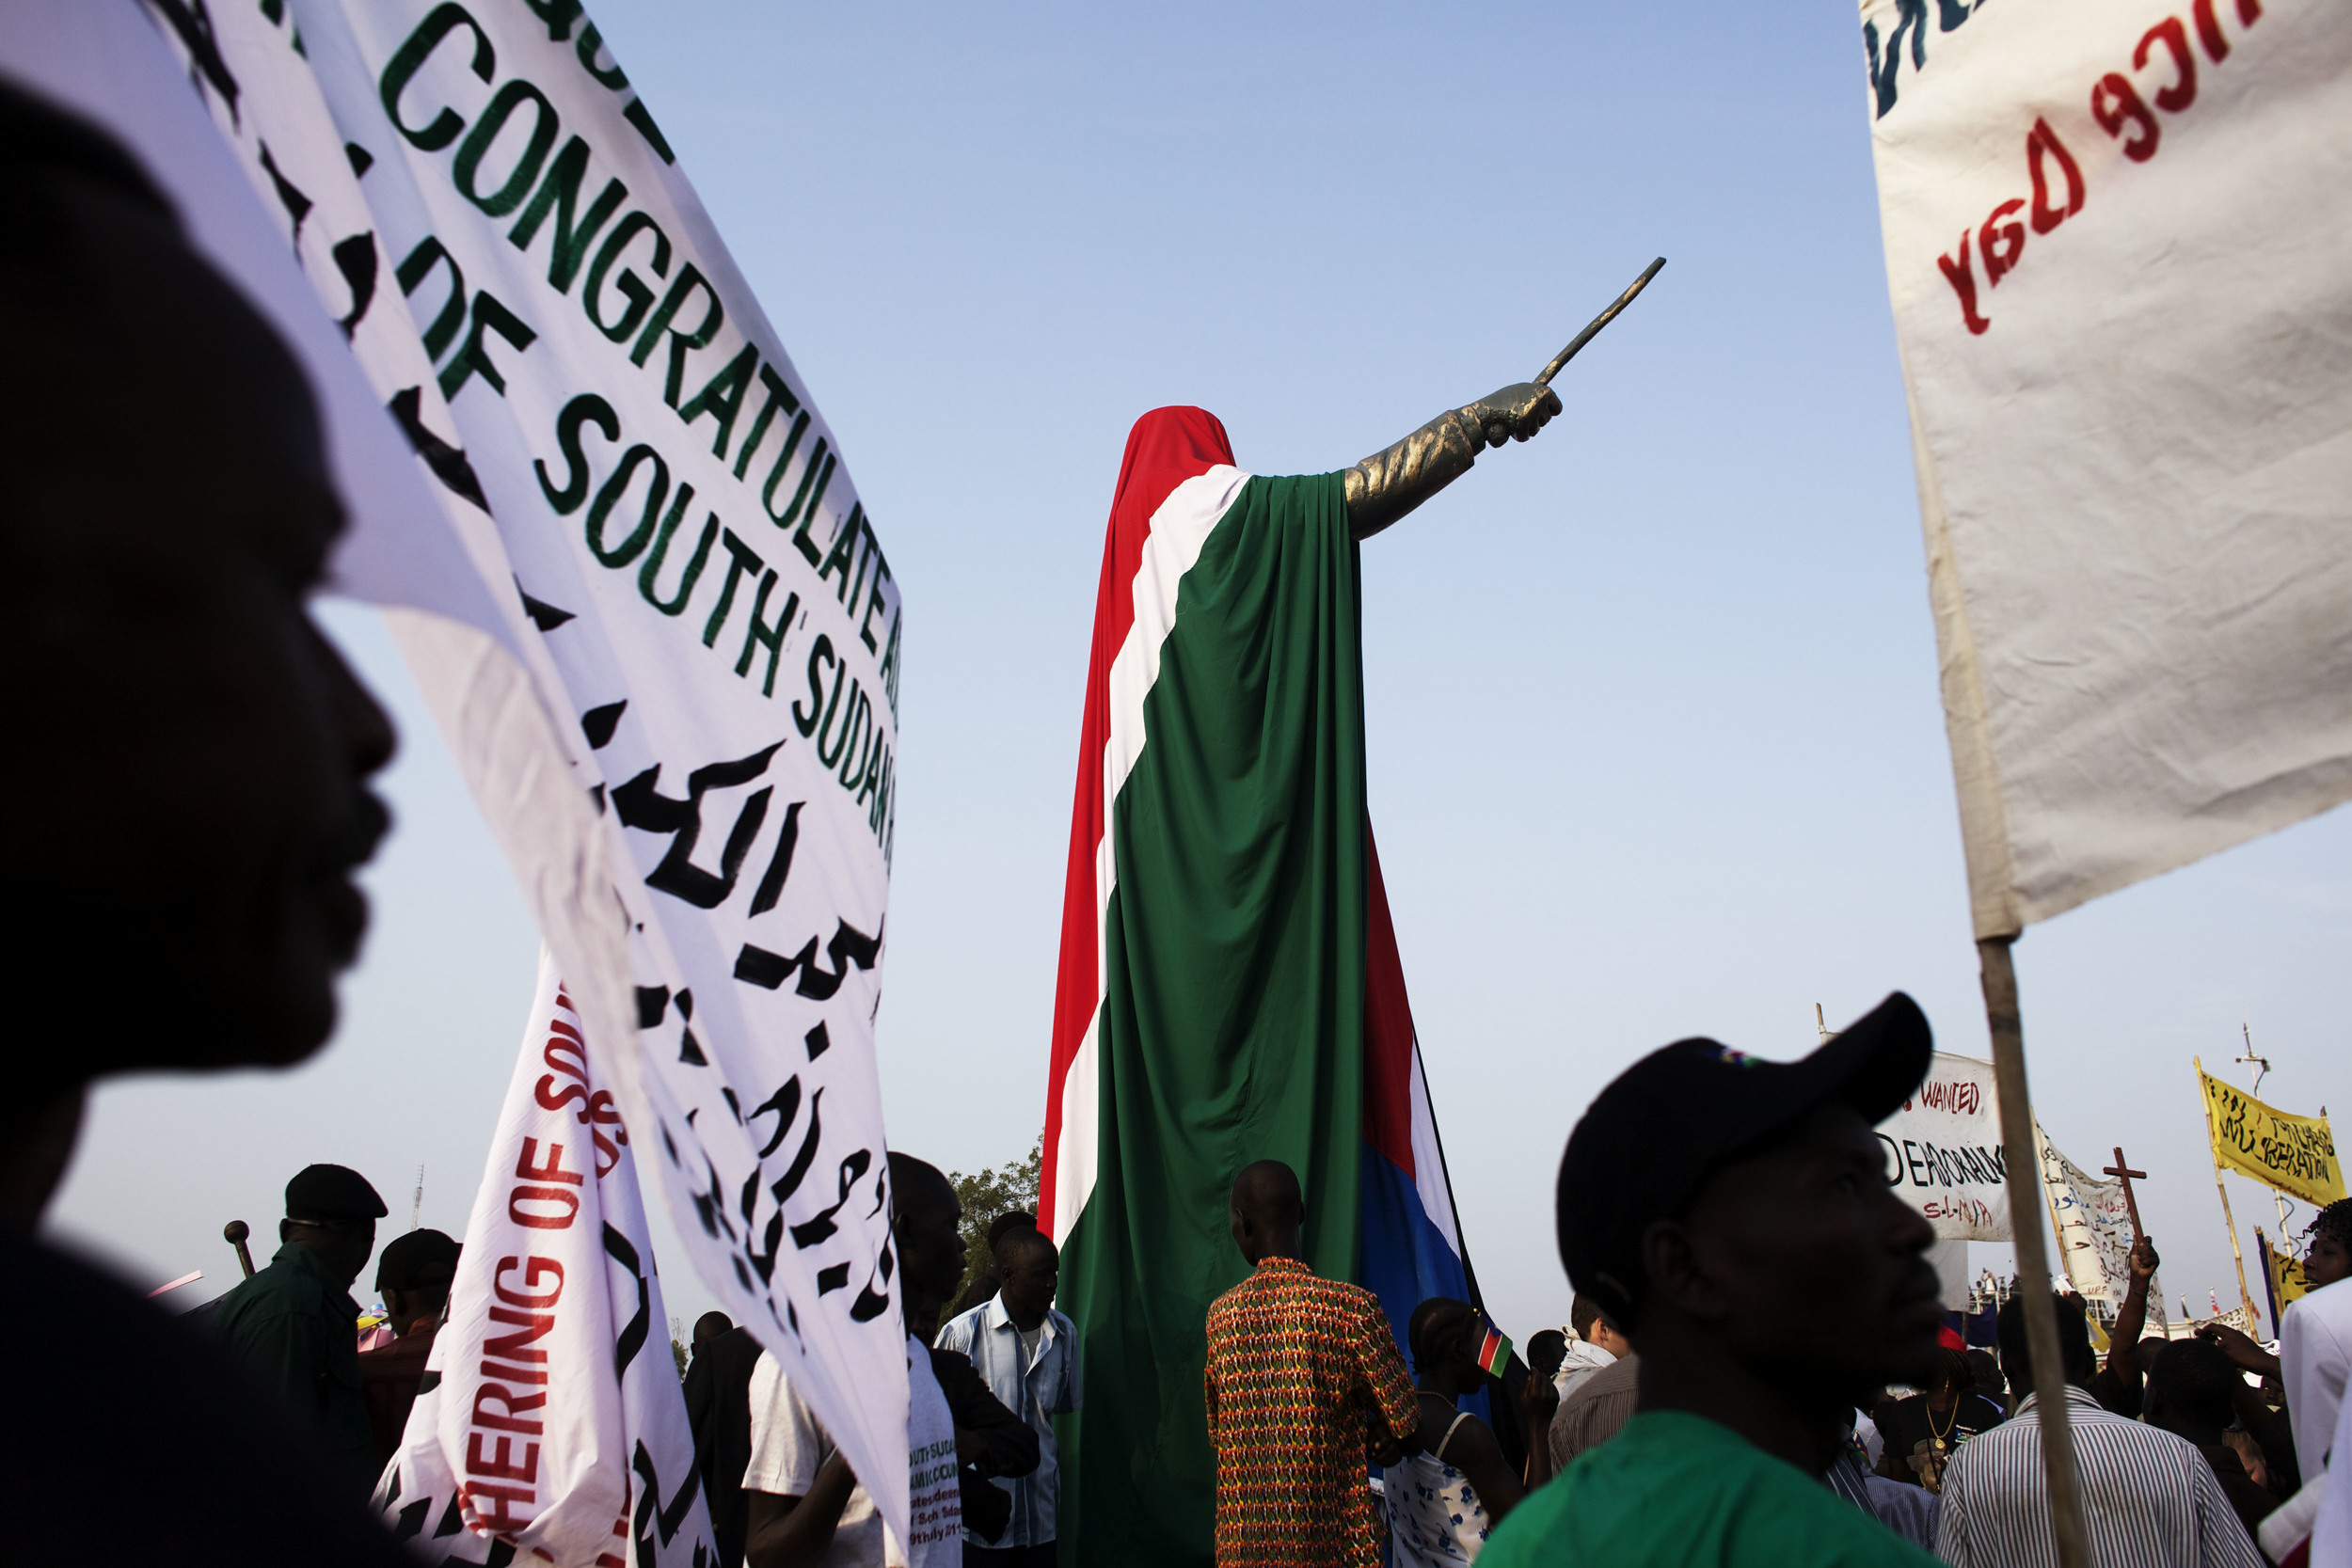 People gather around a statue of former Southern Sudanese leader John Garang, draped in the national flag of South Sudan, during independence celebrations in Juba, South Sudan, Saturday, July 9, 2011. (AP Photo/David Azia)